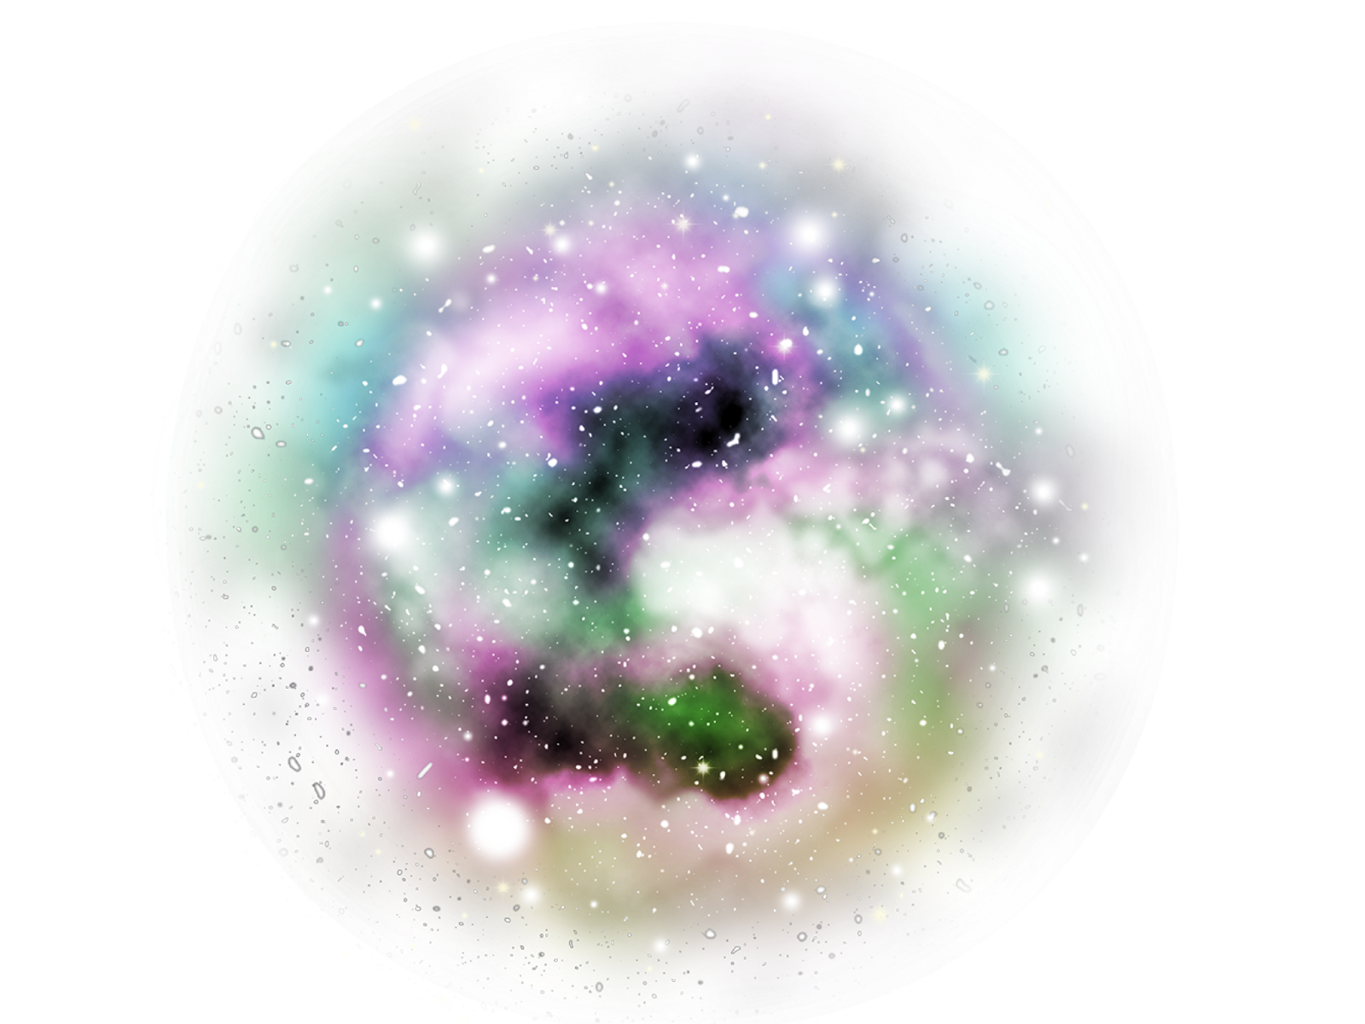 Freetoedit png stars with. Planet clipart galaxy